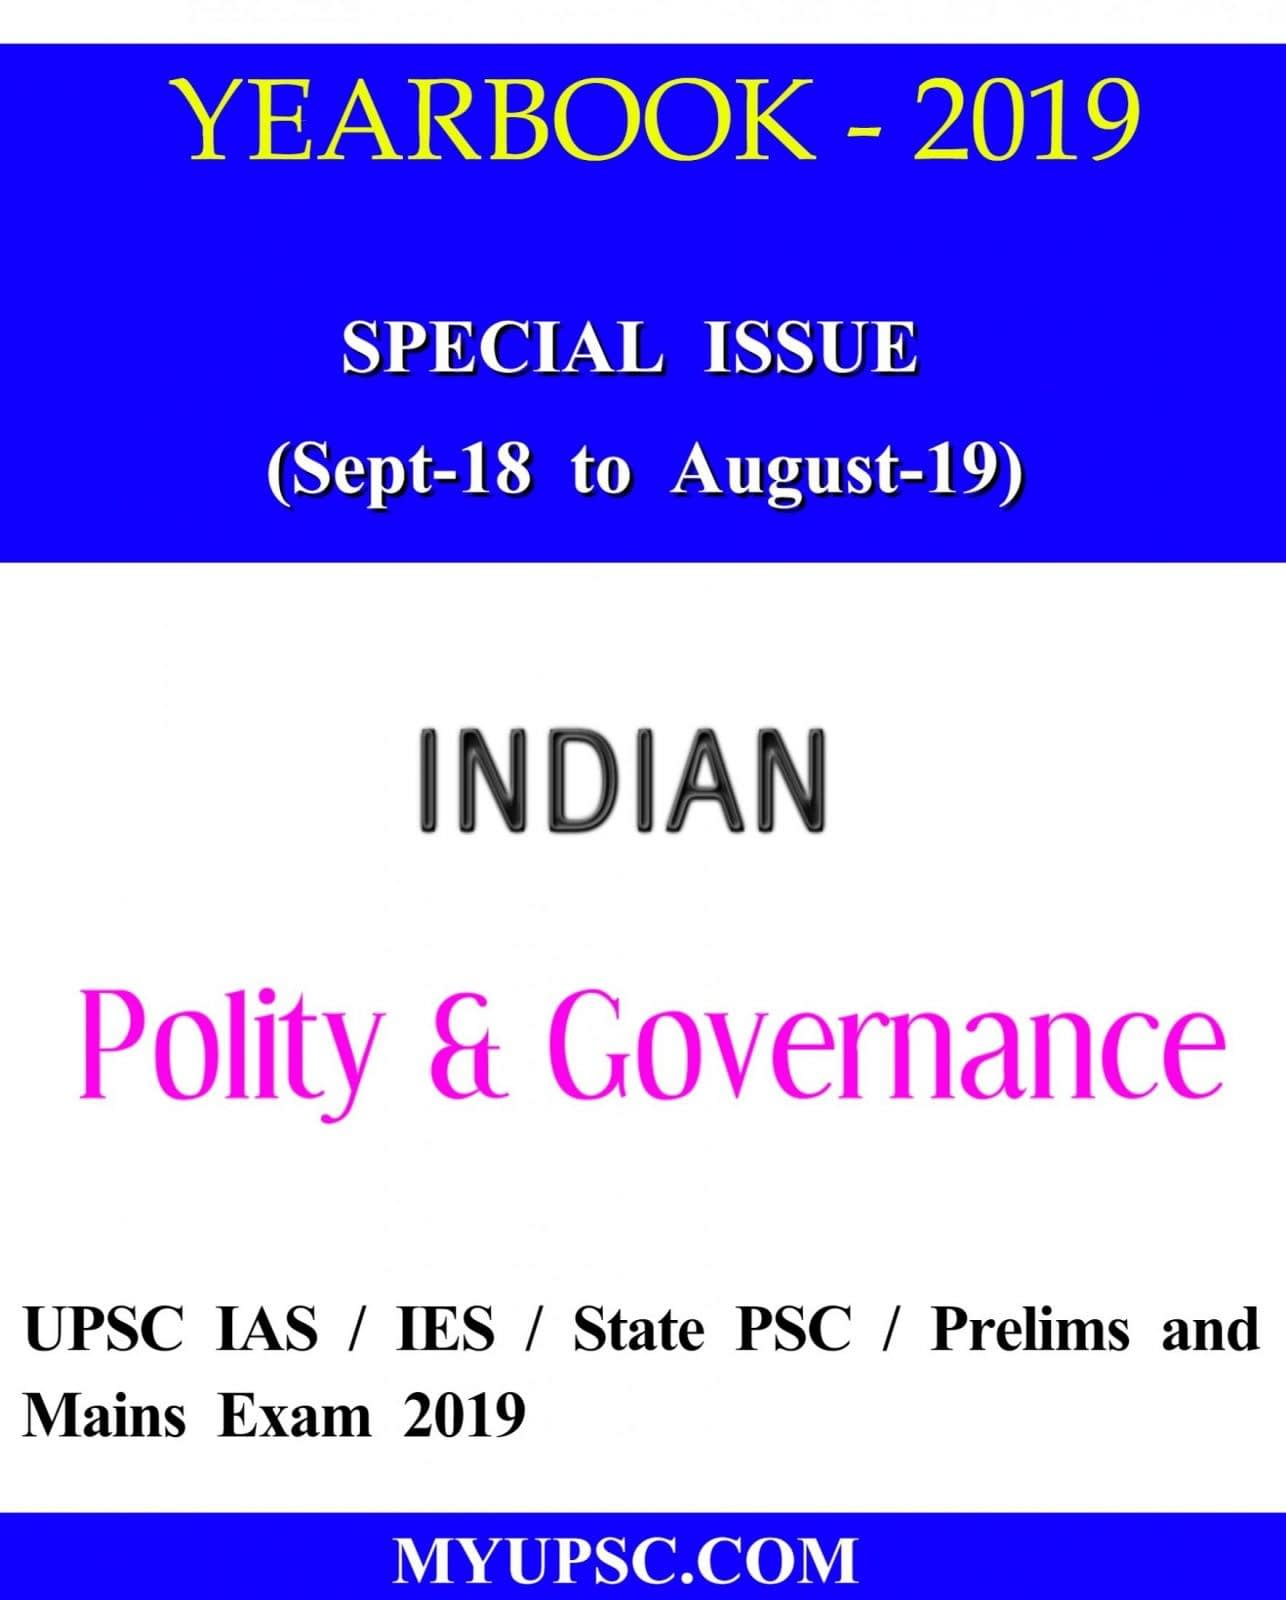 Indian Polity and Governance Yearbook 2019-20